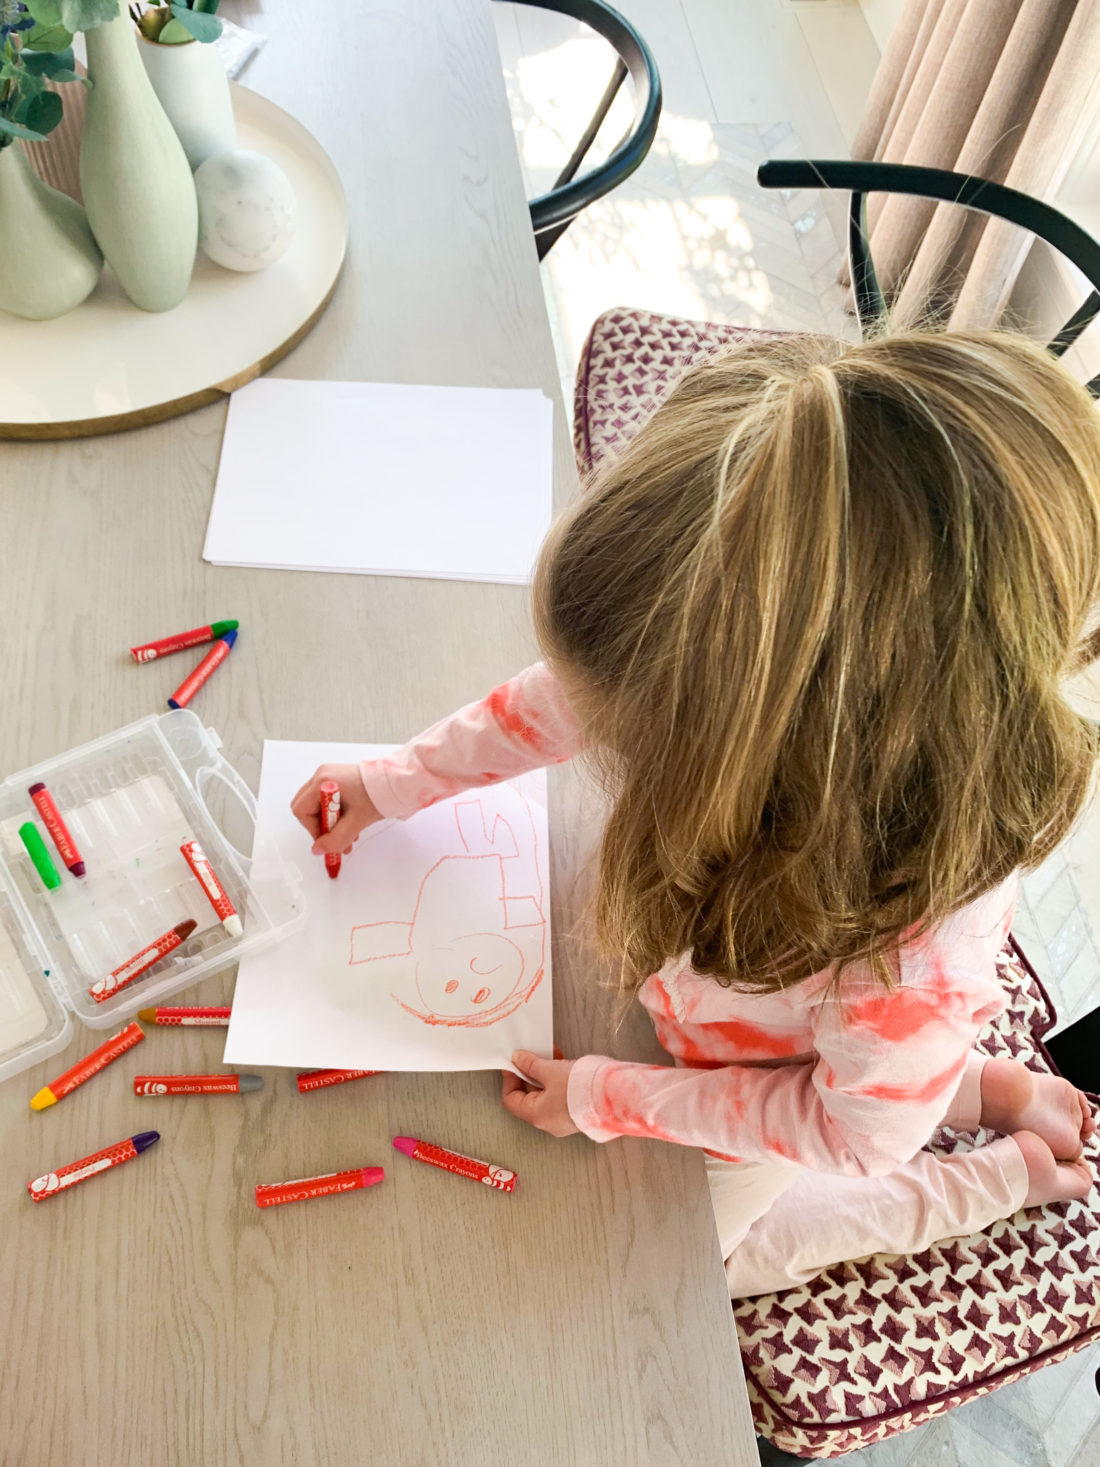 Eva Amurri shares how she's helping her daughter cope with anxiety